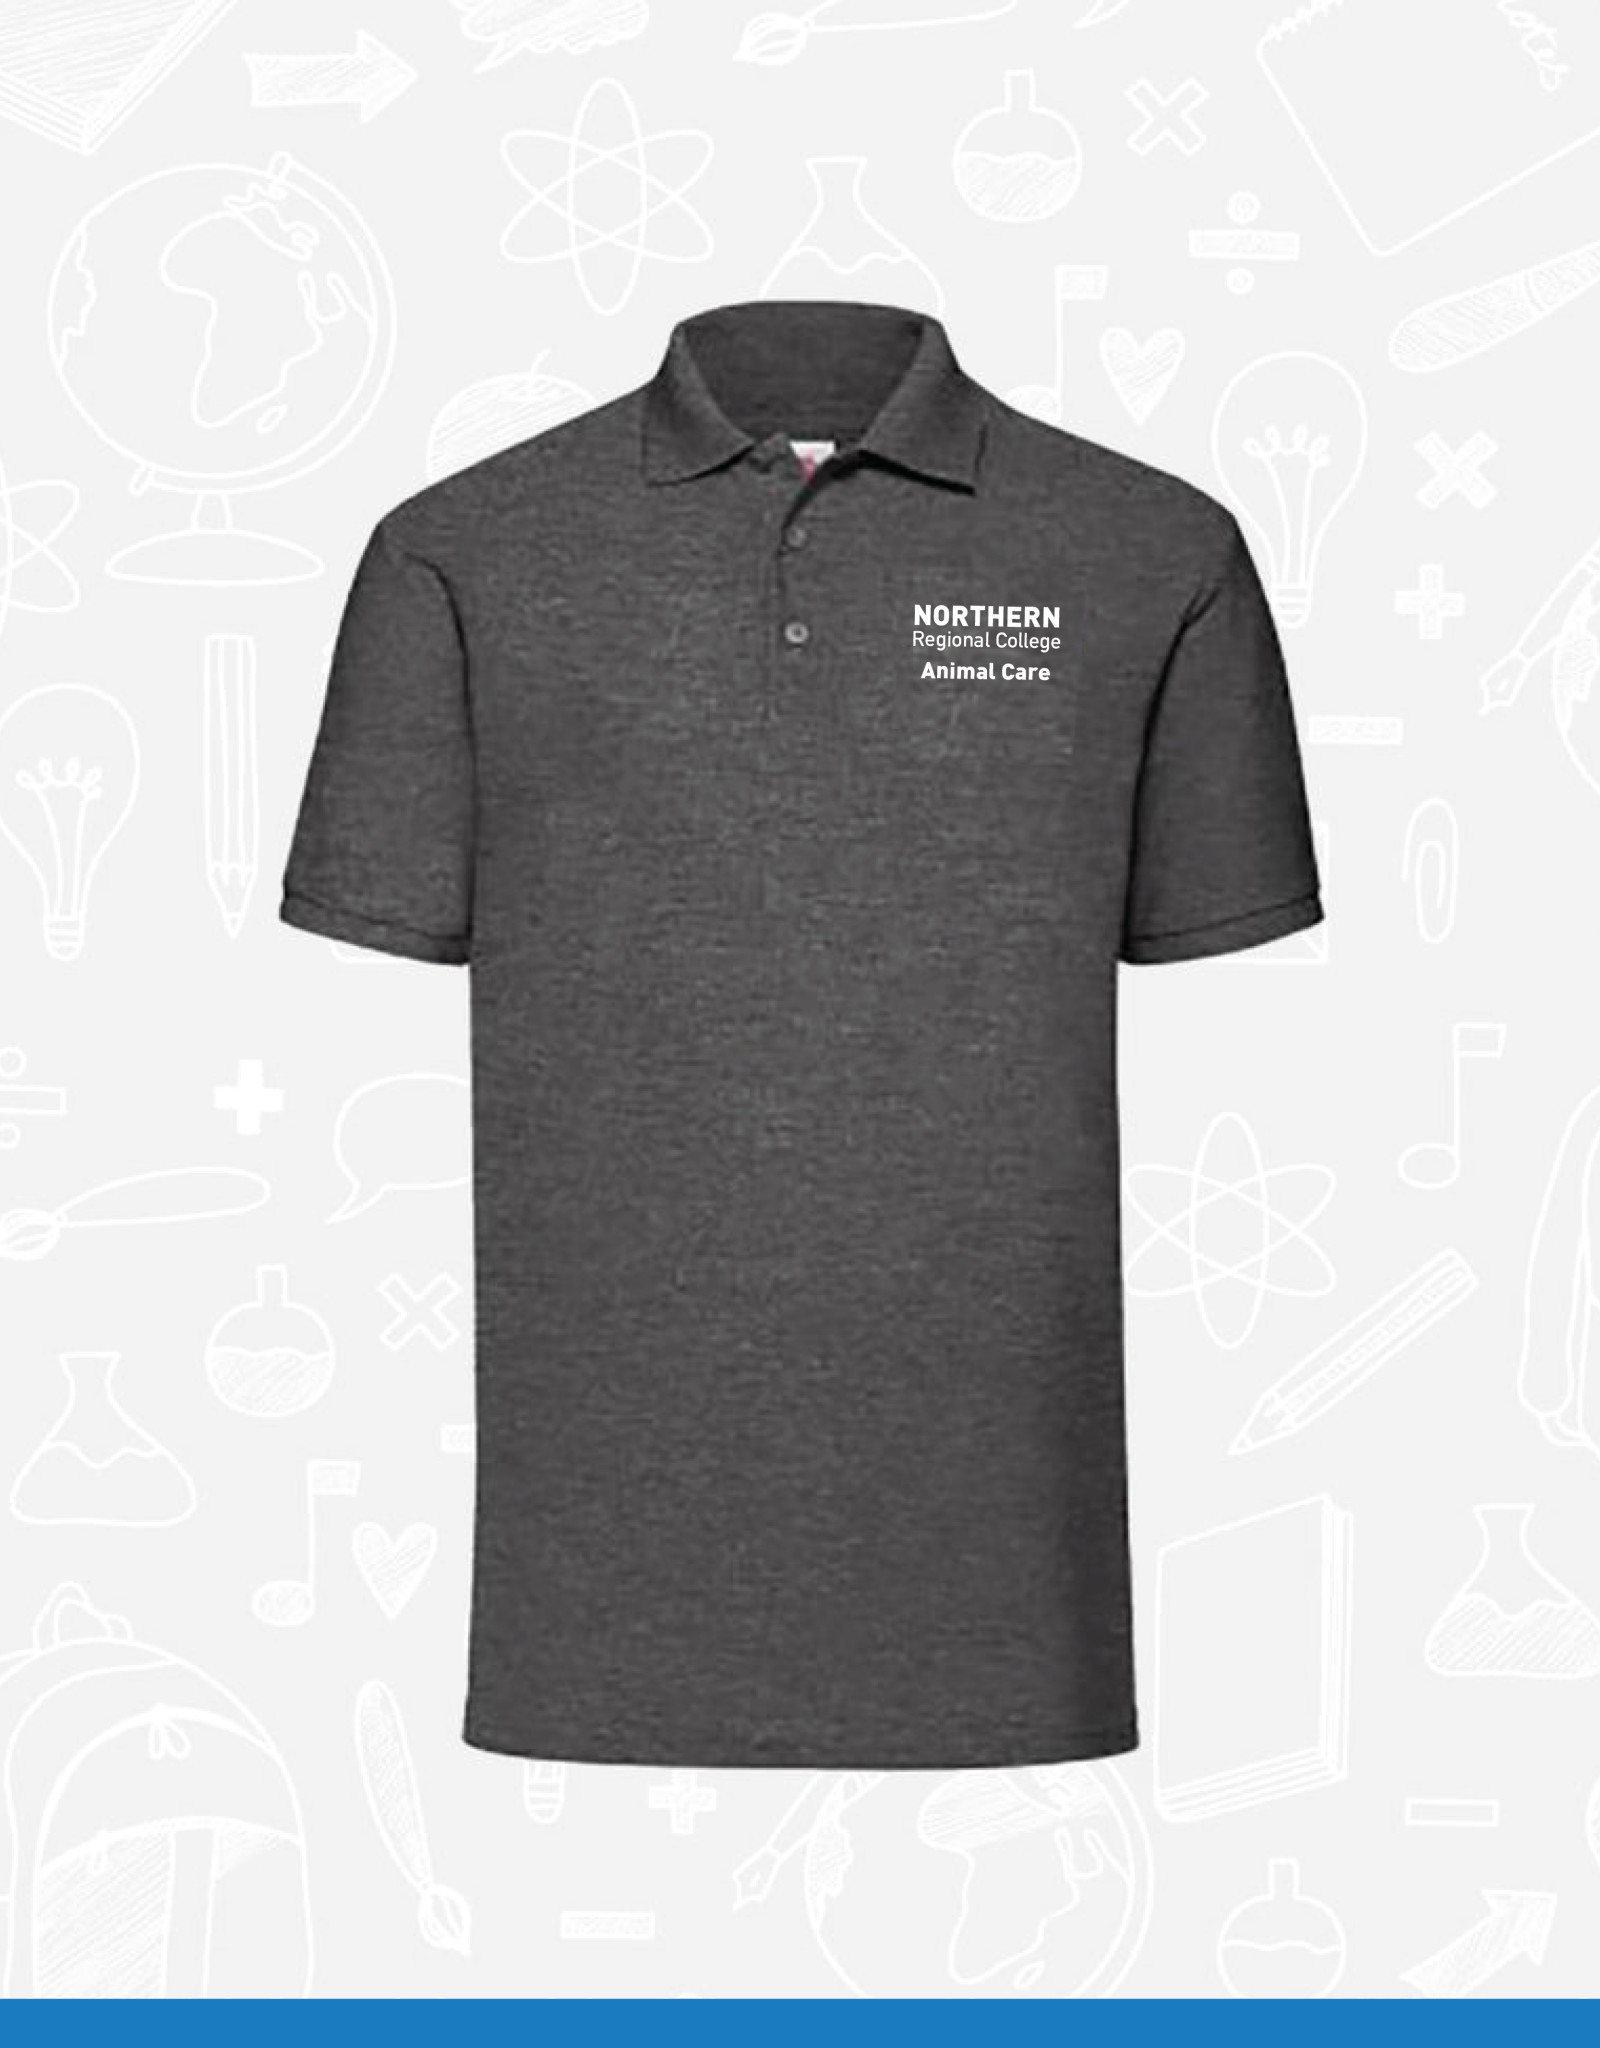 Fruit of the Loom NRC Animal Care Polo (SS11)